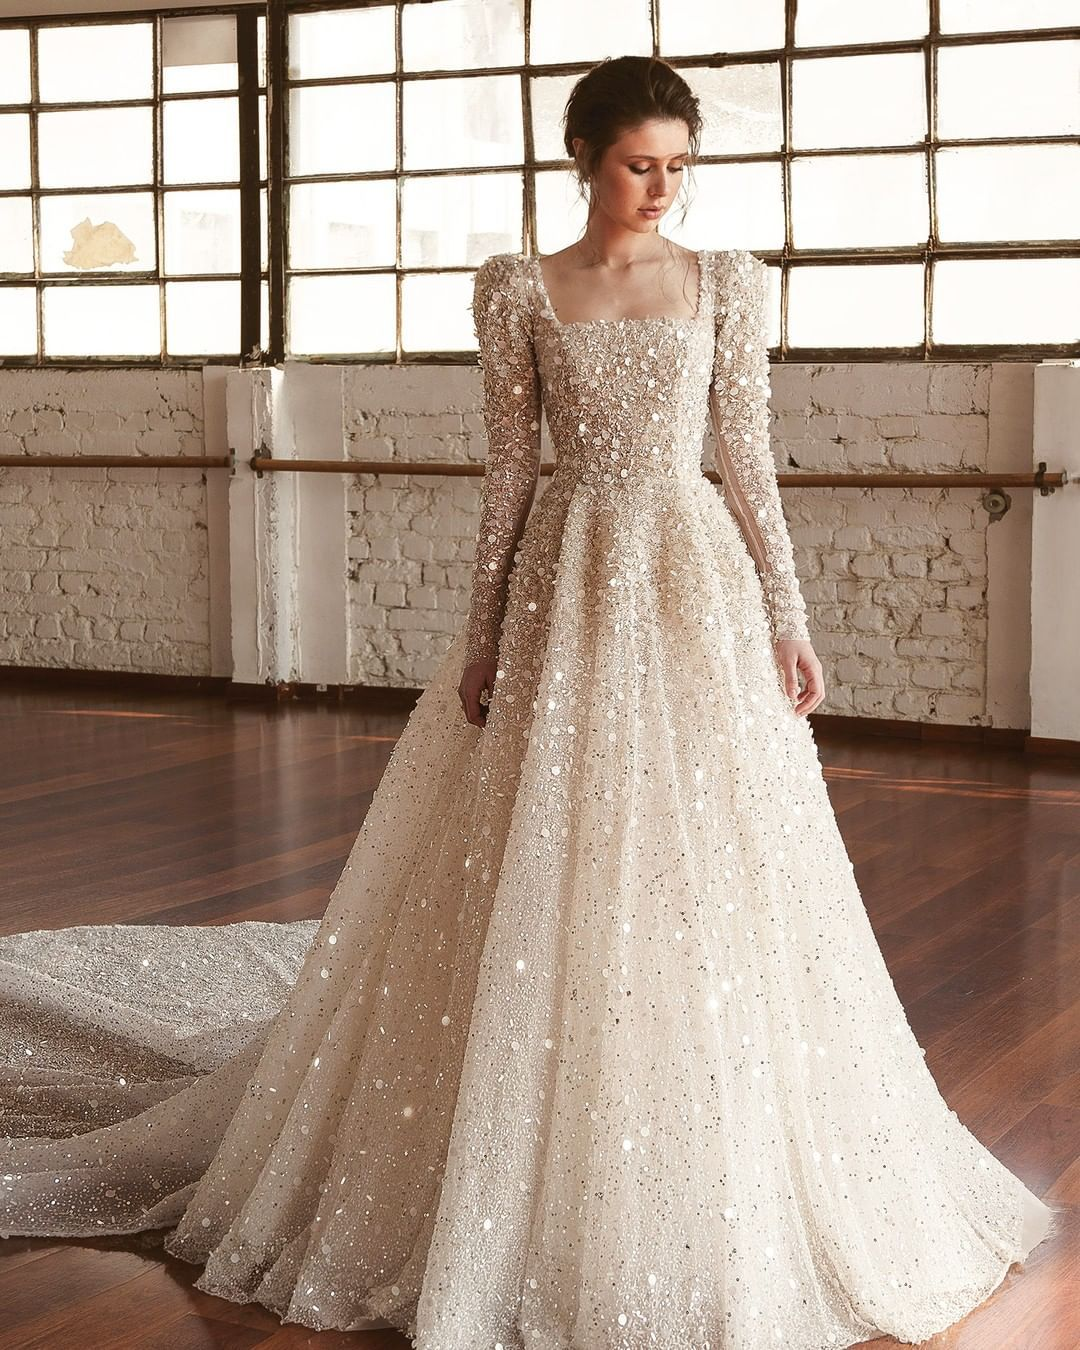 Wedding Dress Designers Choices Every Bride Should Know 540 One Of The Biggest Decisio Wedding Dress Couture Wedding Dress Long Sleeve Wedding Dress Sleeves